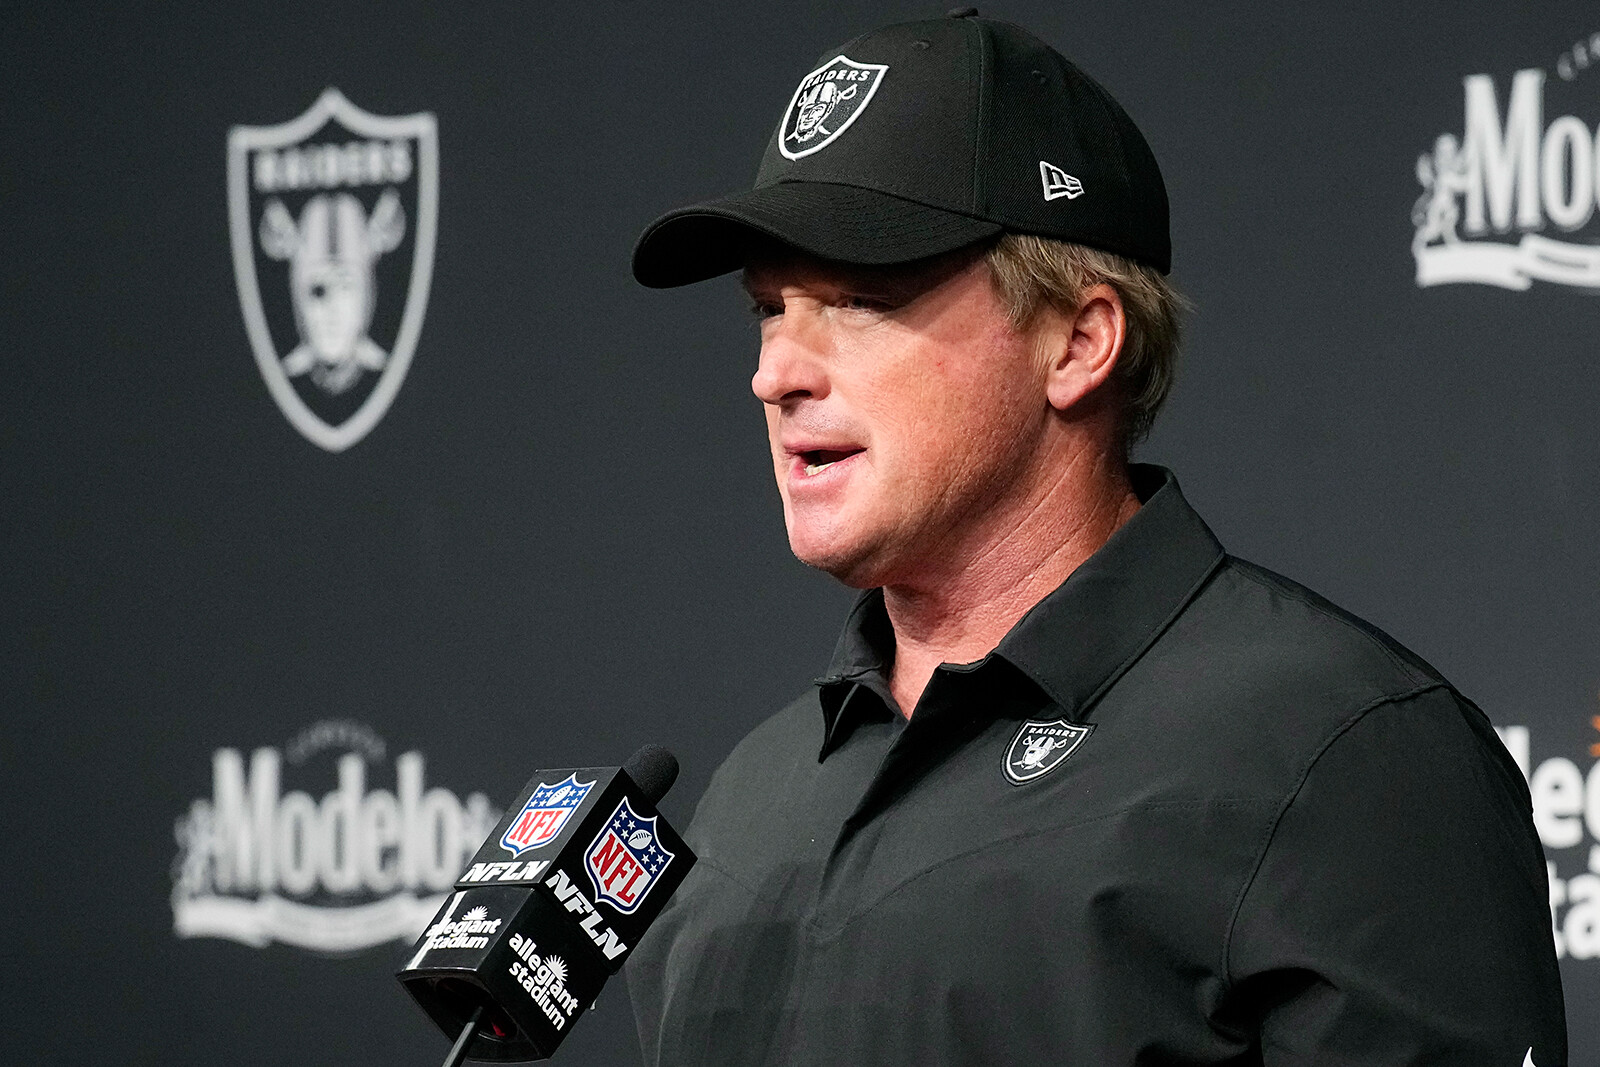 Jon Gruden has resigned as head coach of the Las Vegas Raiders after reports of homophobic, racist and misogynistic emails